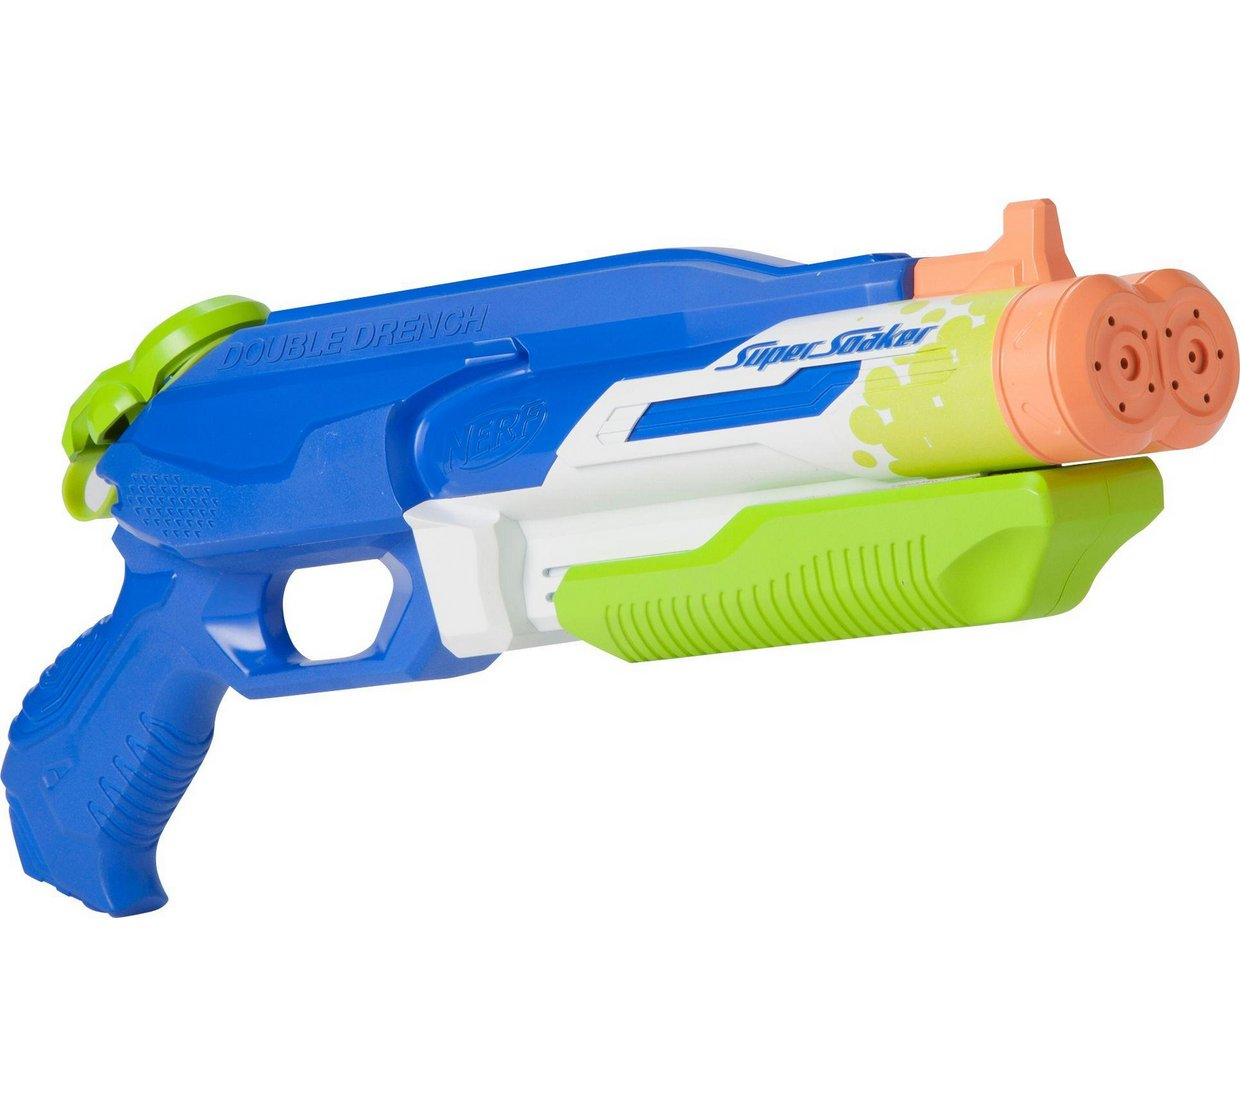 Nerf Supersoaker Double Drench Water Blaster